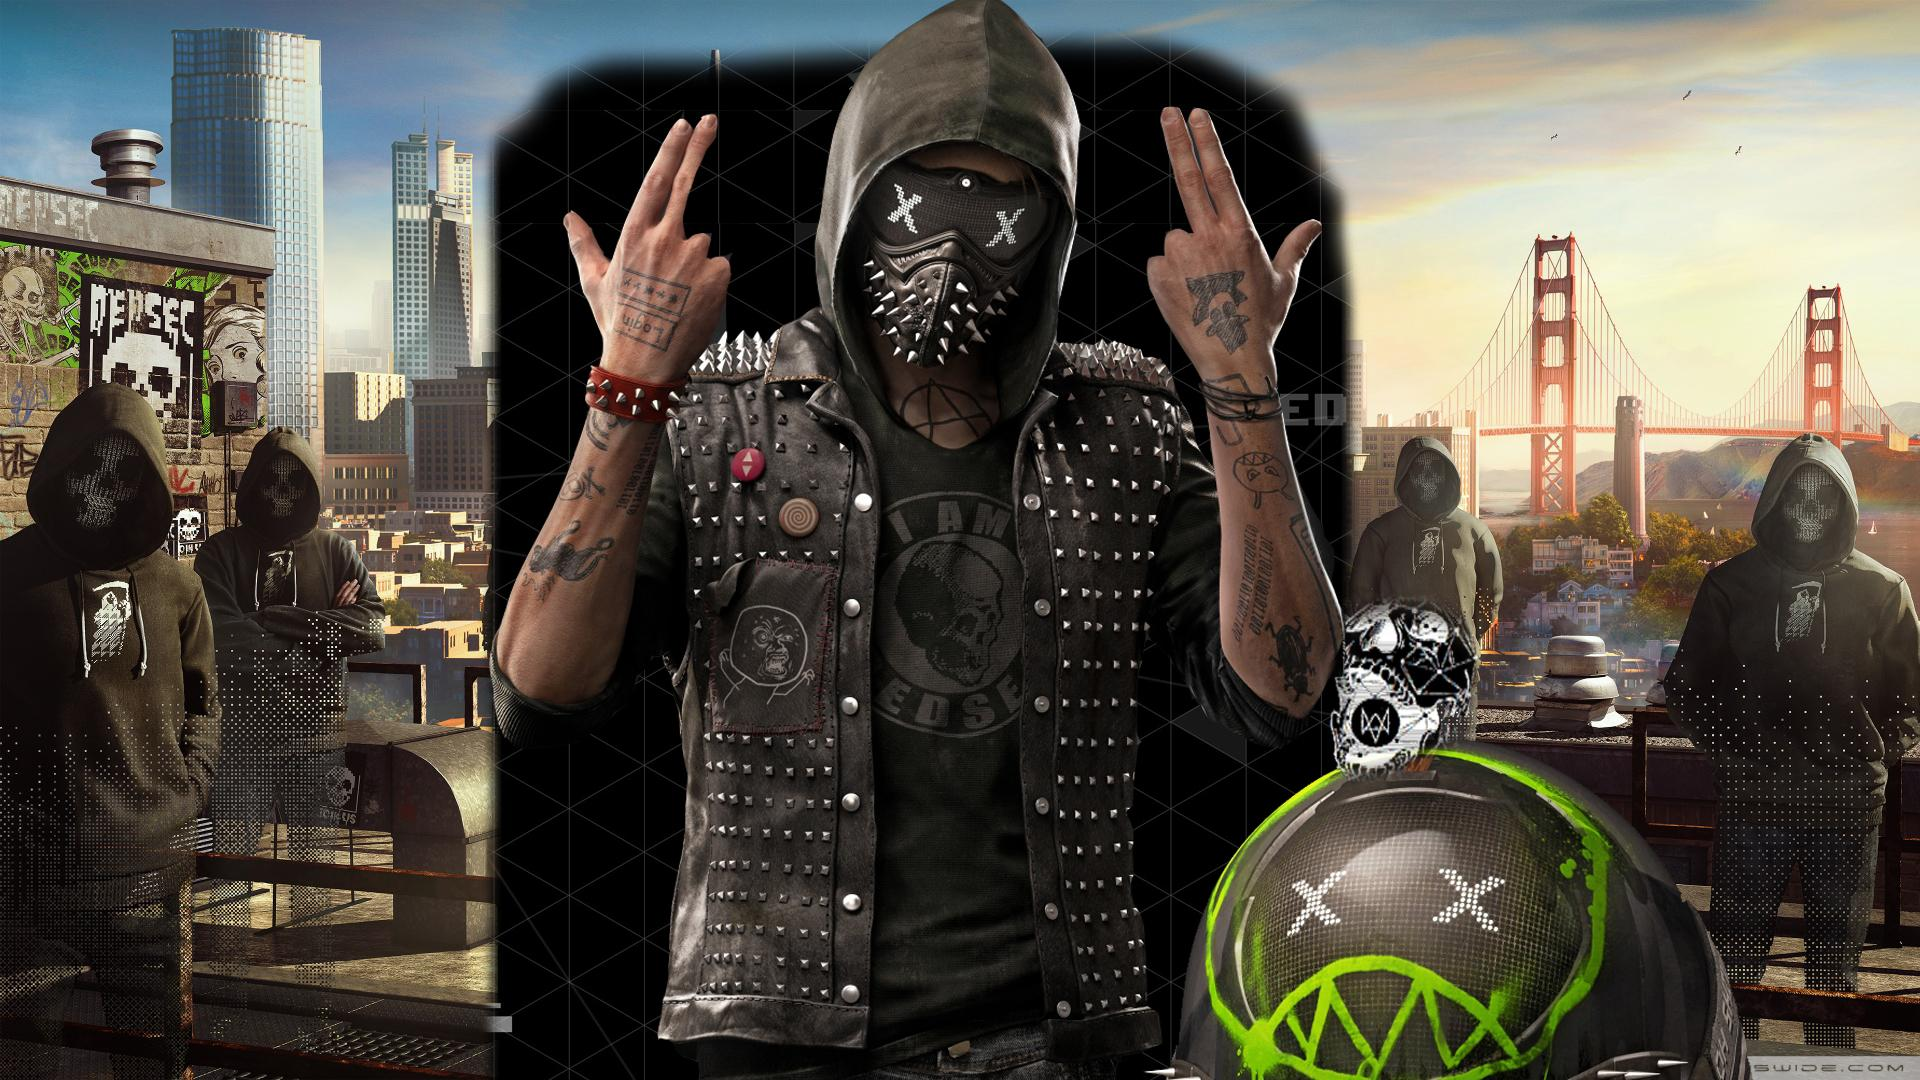 Wd2 Imagei Clipped Together A Wallpaper For Watch Dogs - Watch Dogs 2 Haum , HD Wallpaper & Backgrounds